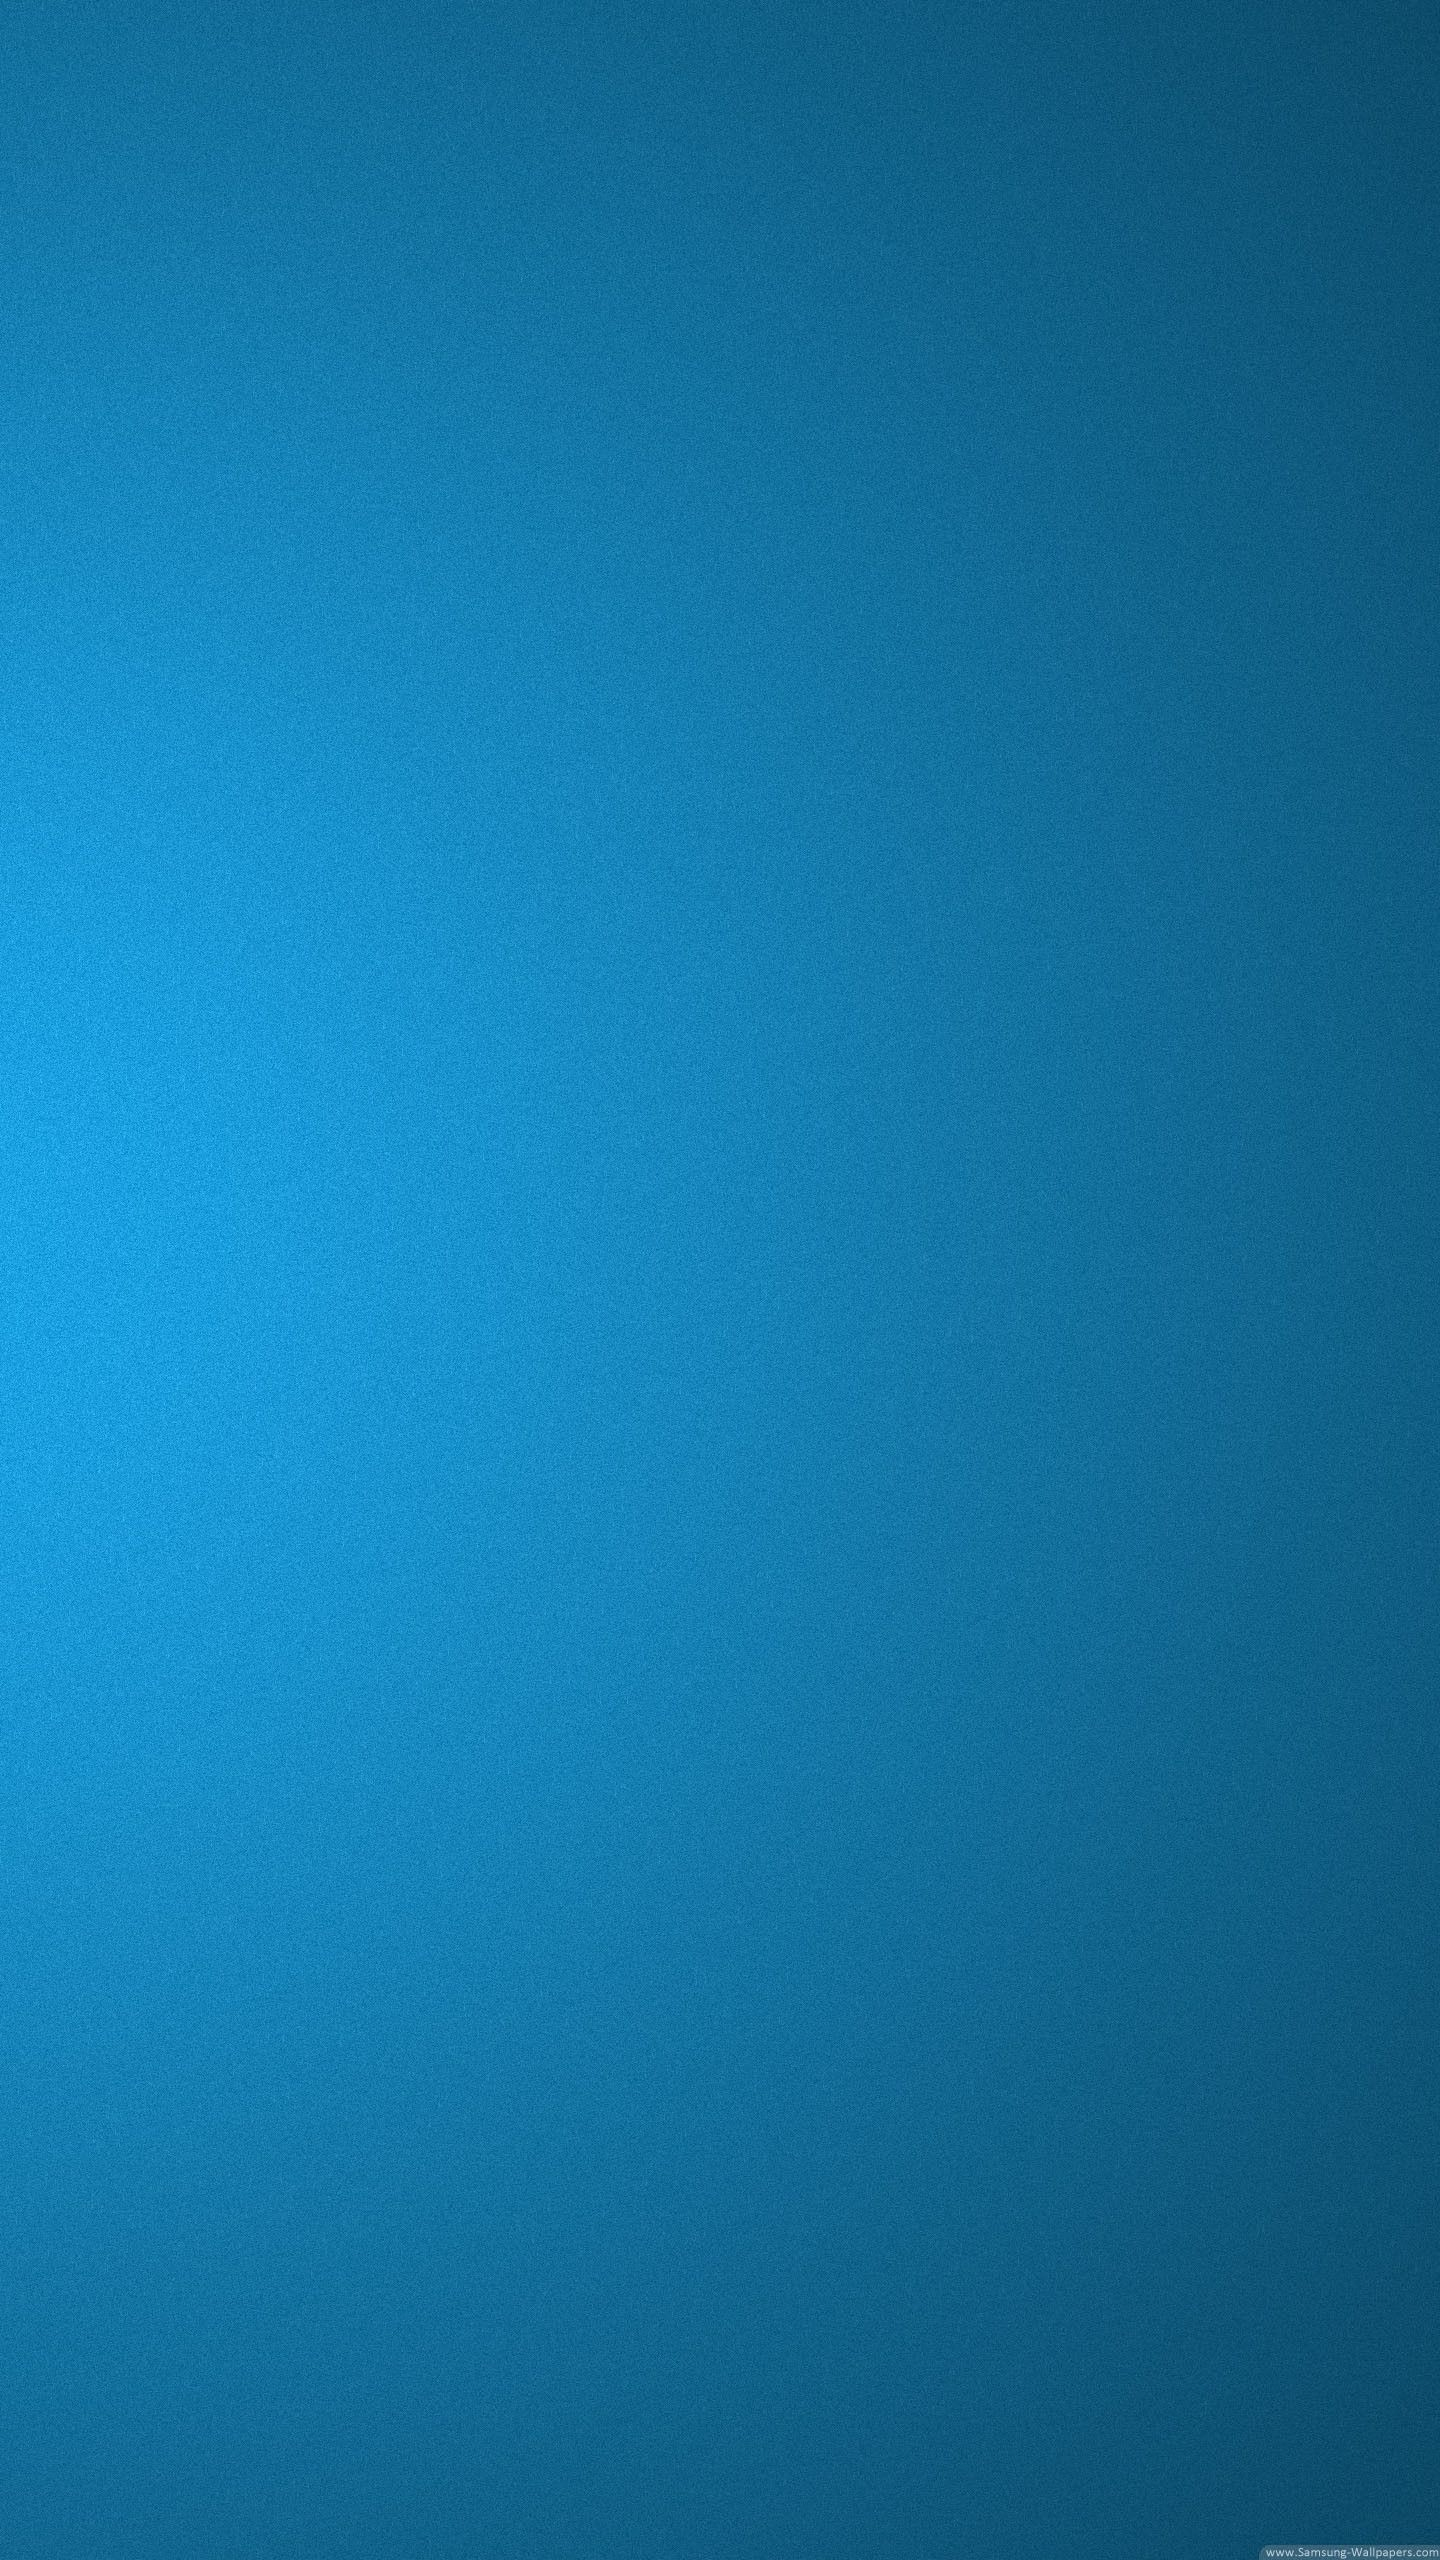 blue wallpaper aesthetic